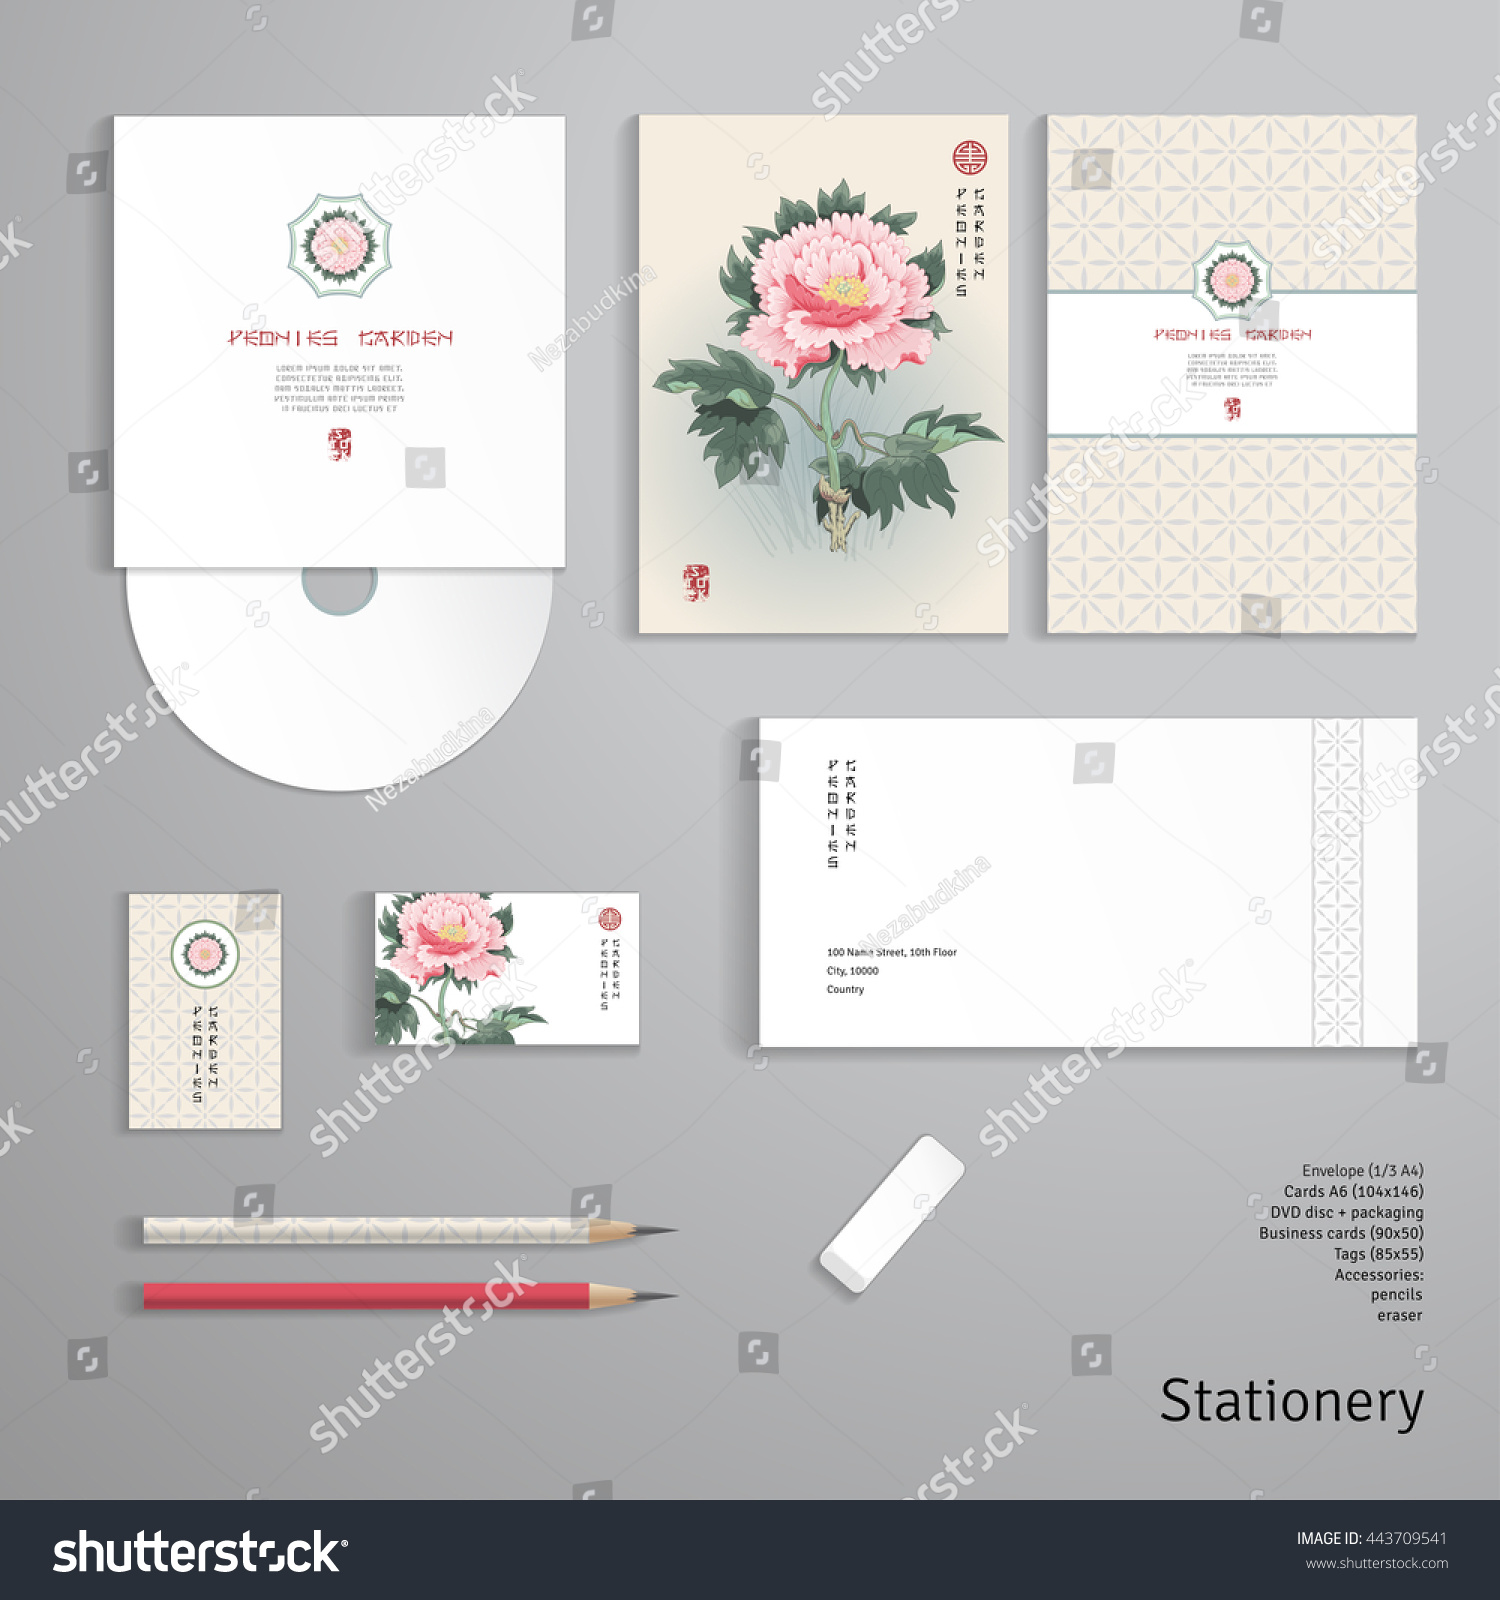 Vector Identity Templates Envelope Business Card Stock Vector ...